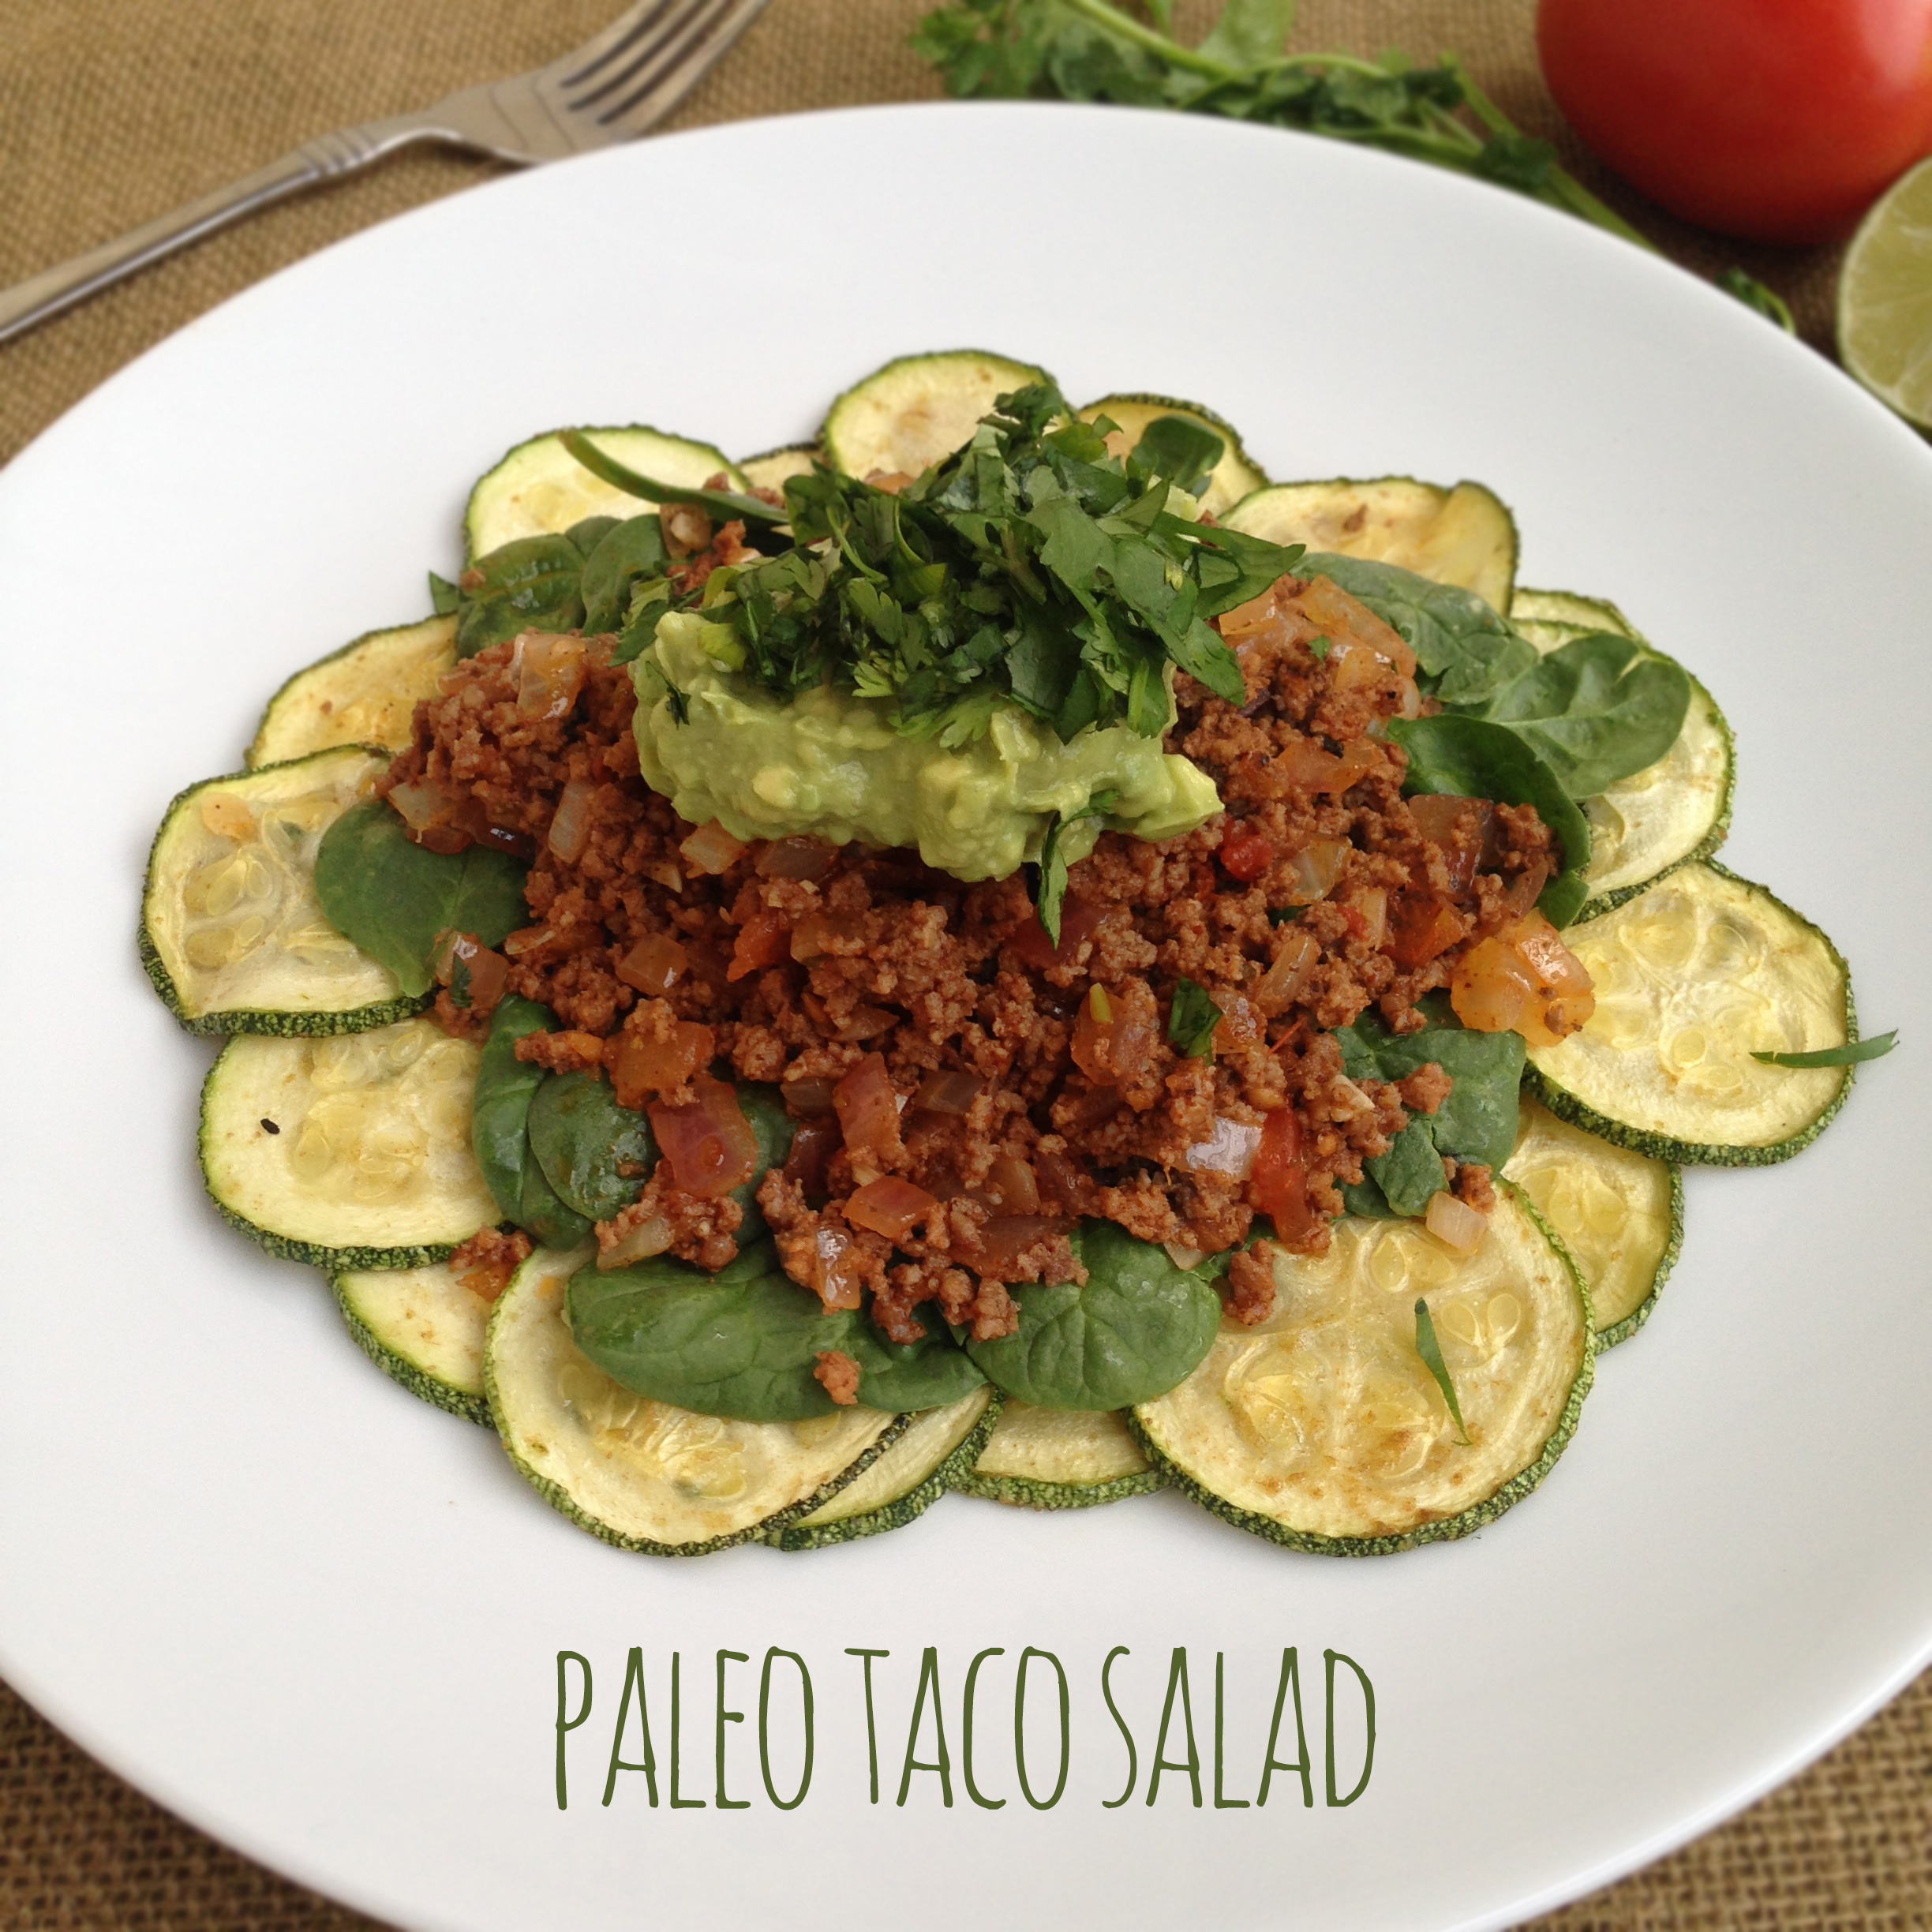 Paleo Taco Salad with Zucchini Chips